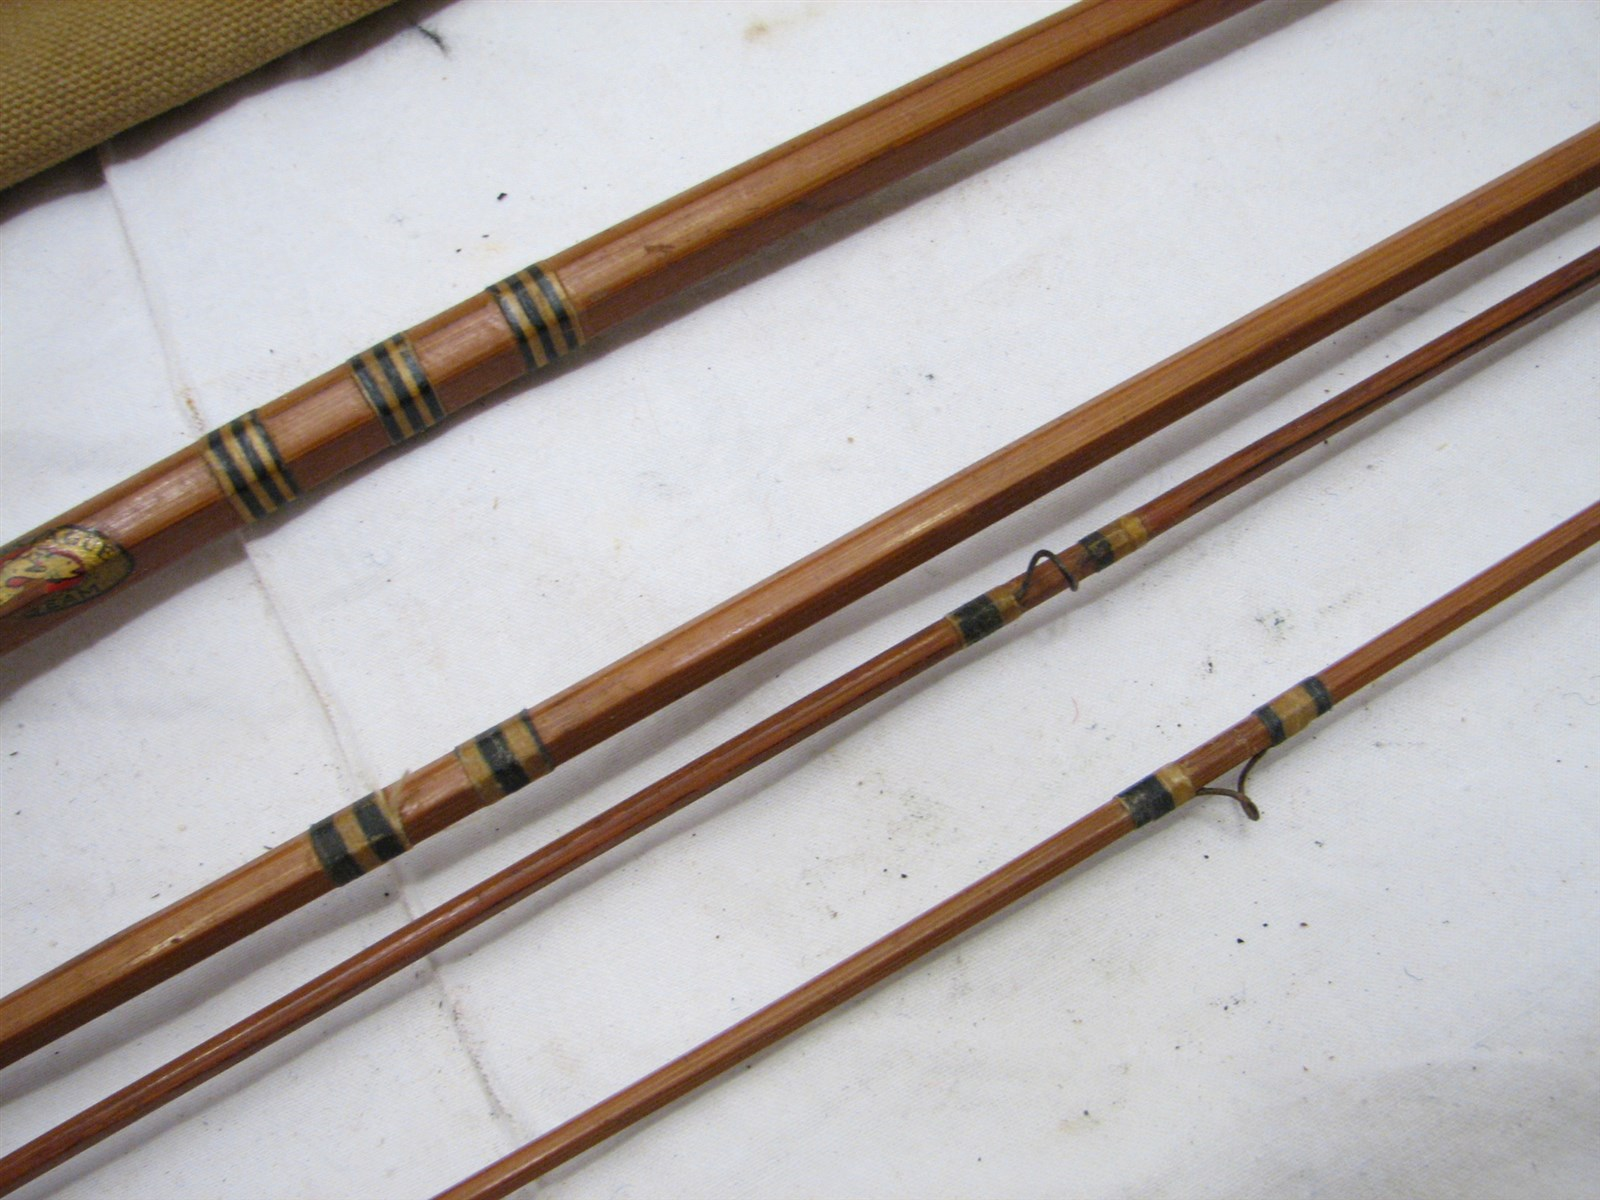 Antique split bamboo montague fly fishing rod w case